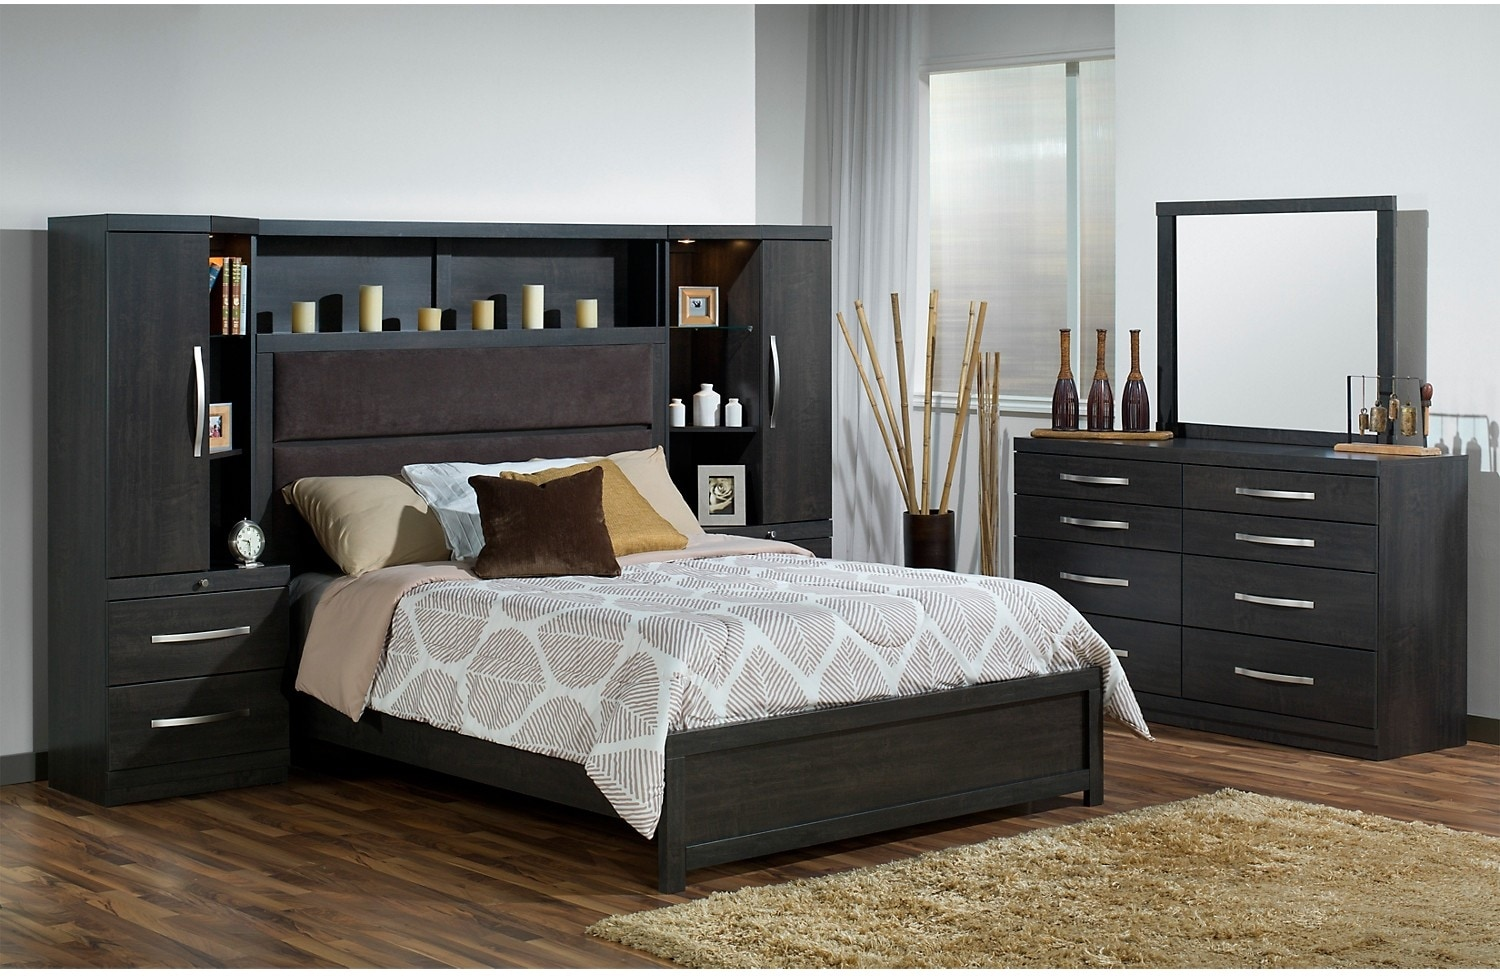 Willowdale queen 5 piece pier bedroom package the brick Bedrooms furniture